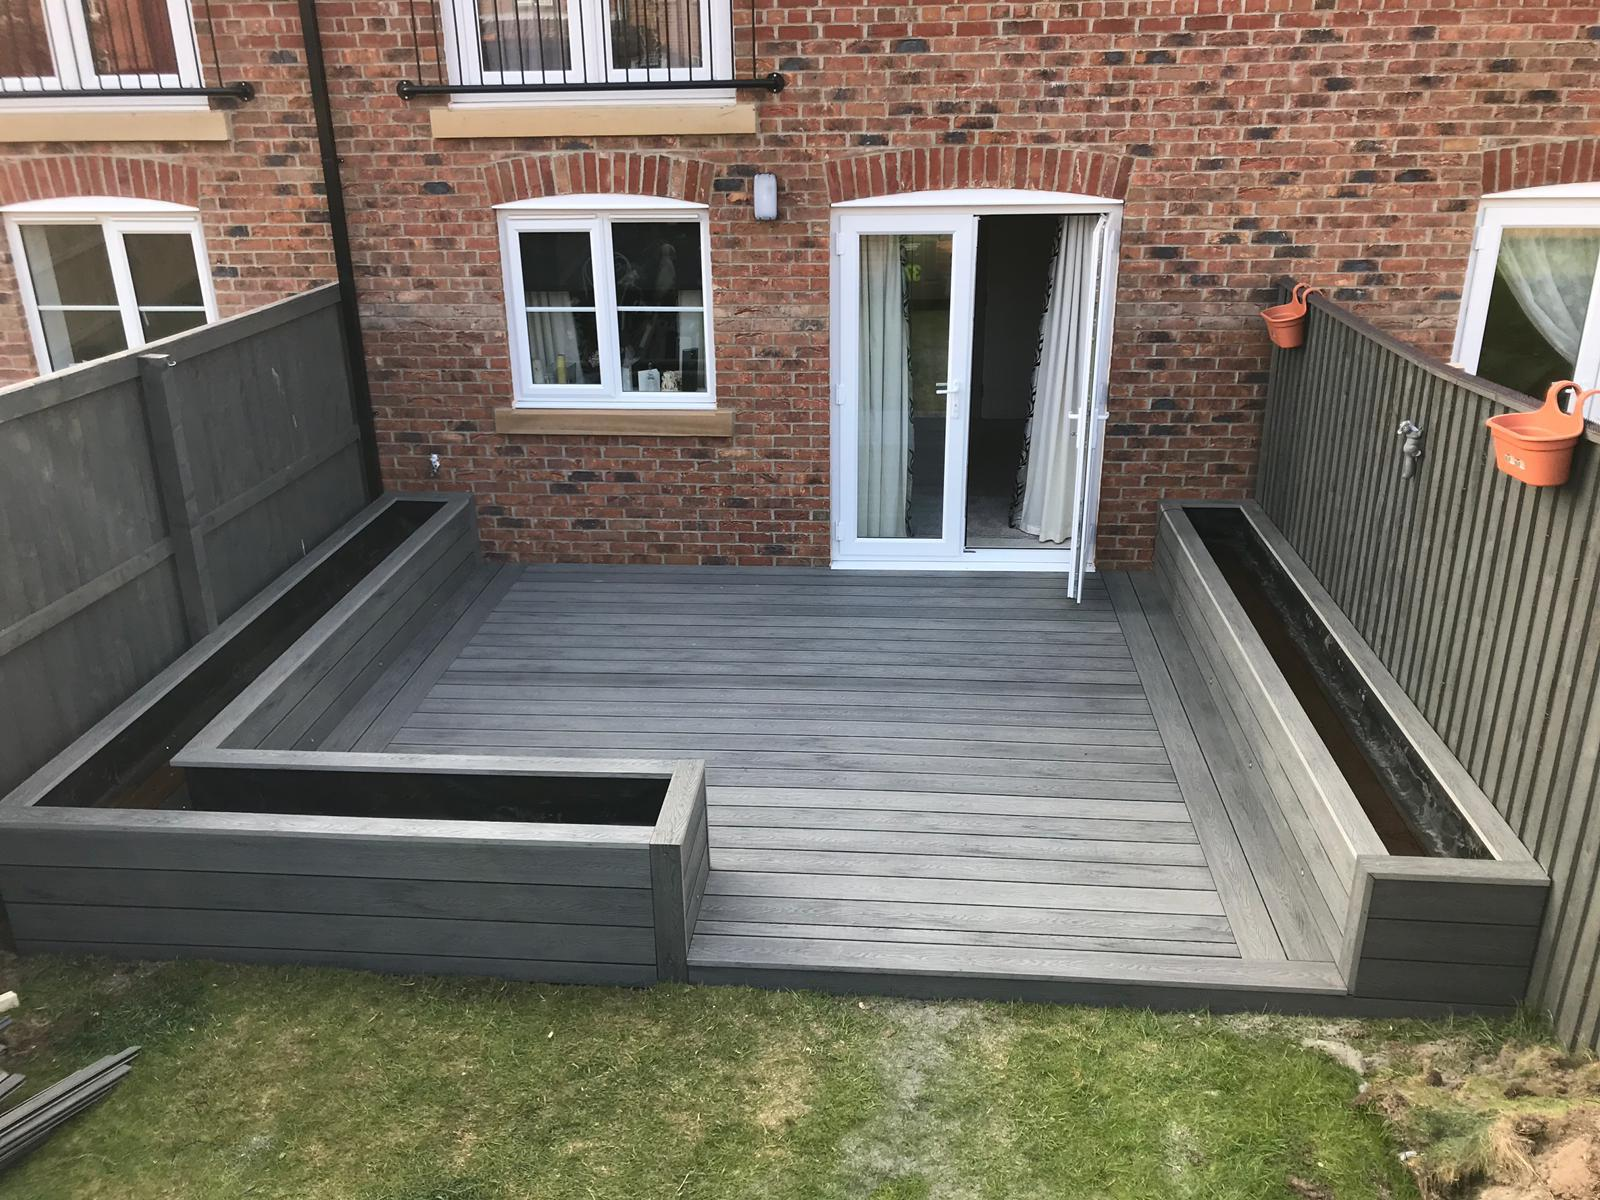 Heritage Mixed Grey Deep Embossed wood Grain effect Composite Decking with added planters